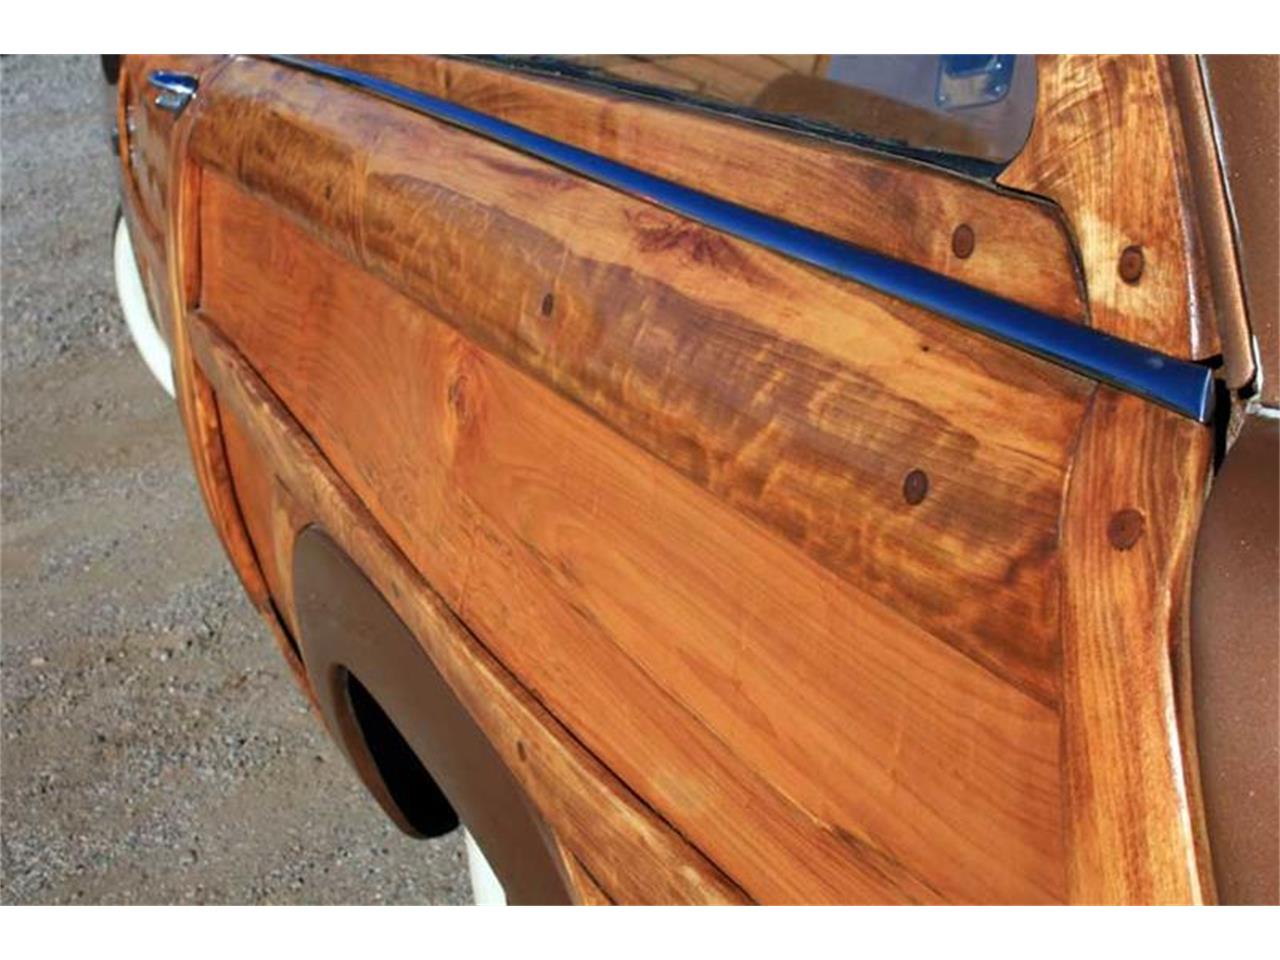 Large Picture of '51 Ford Woody Wagon located in San Luis Obispo California - $45,000.00 Offered by Classic Car Guy - EACH